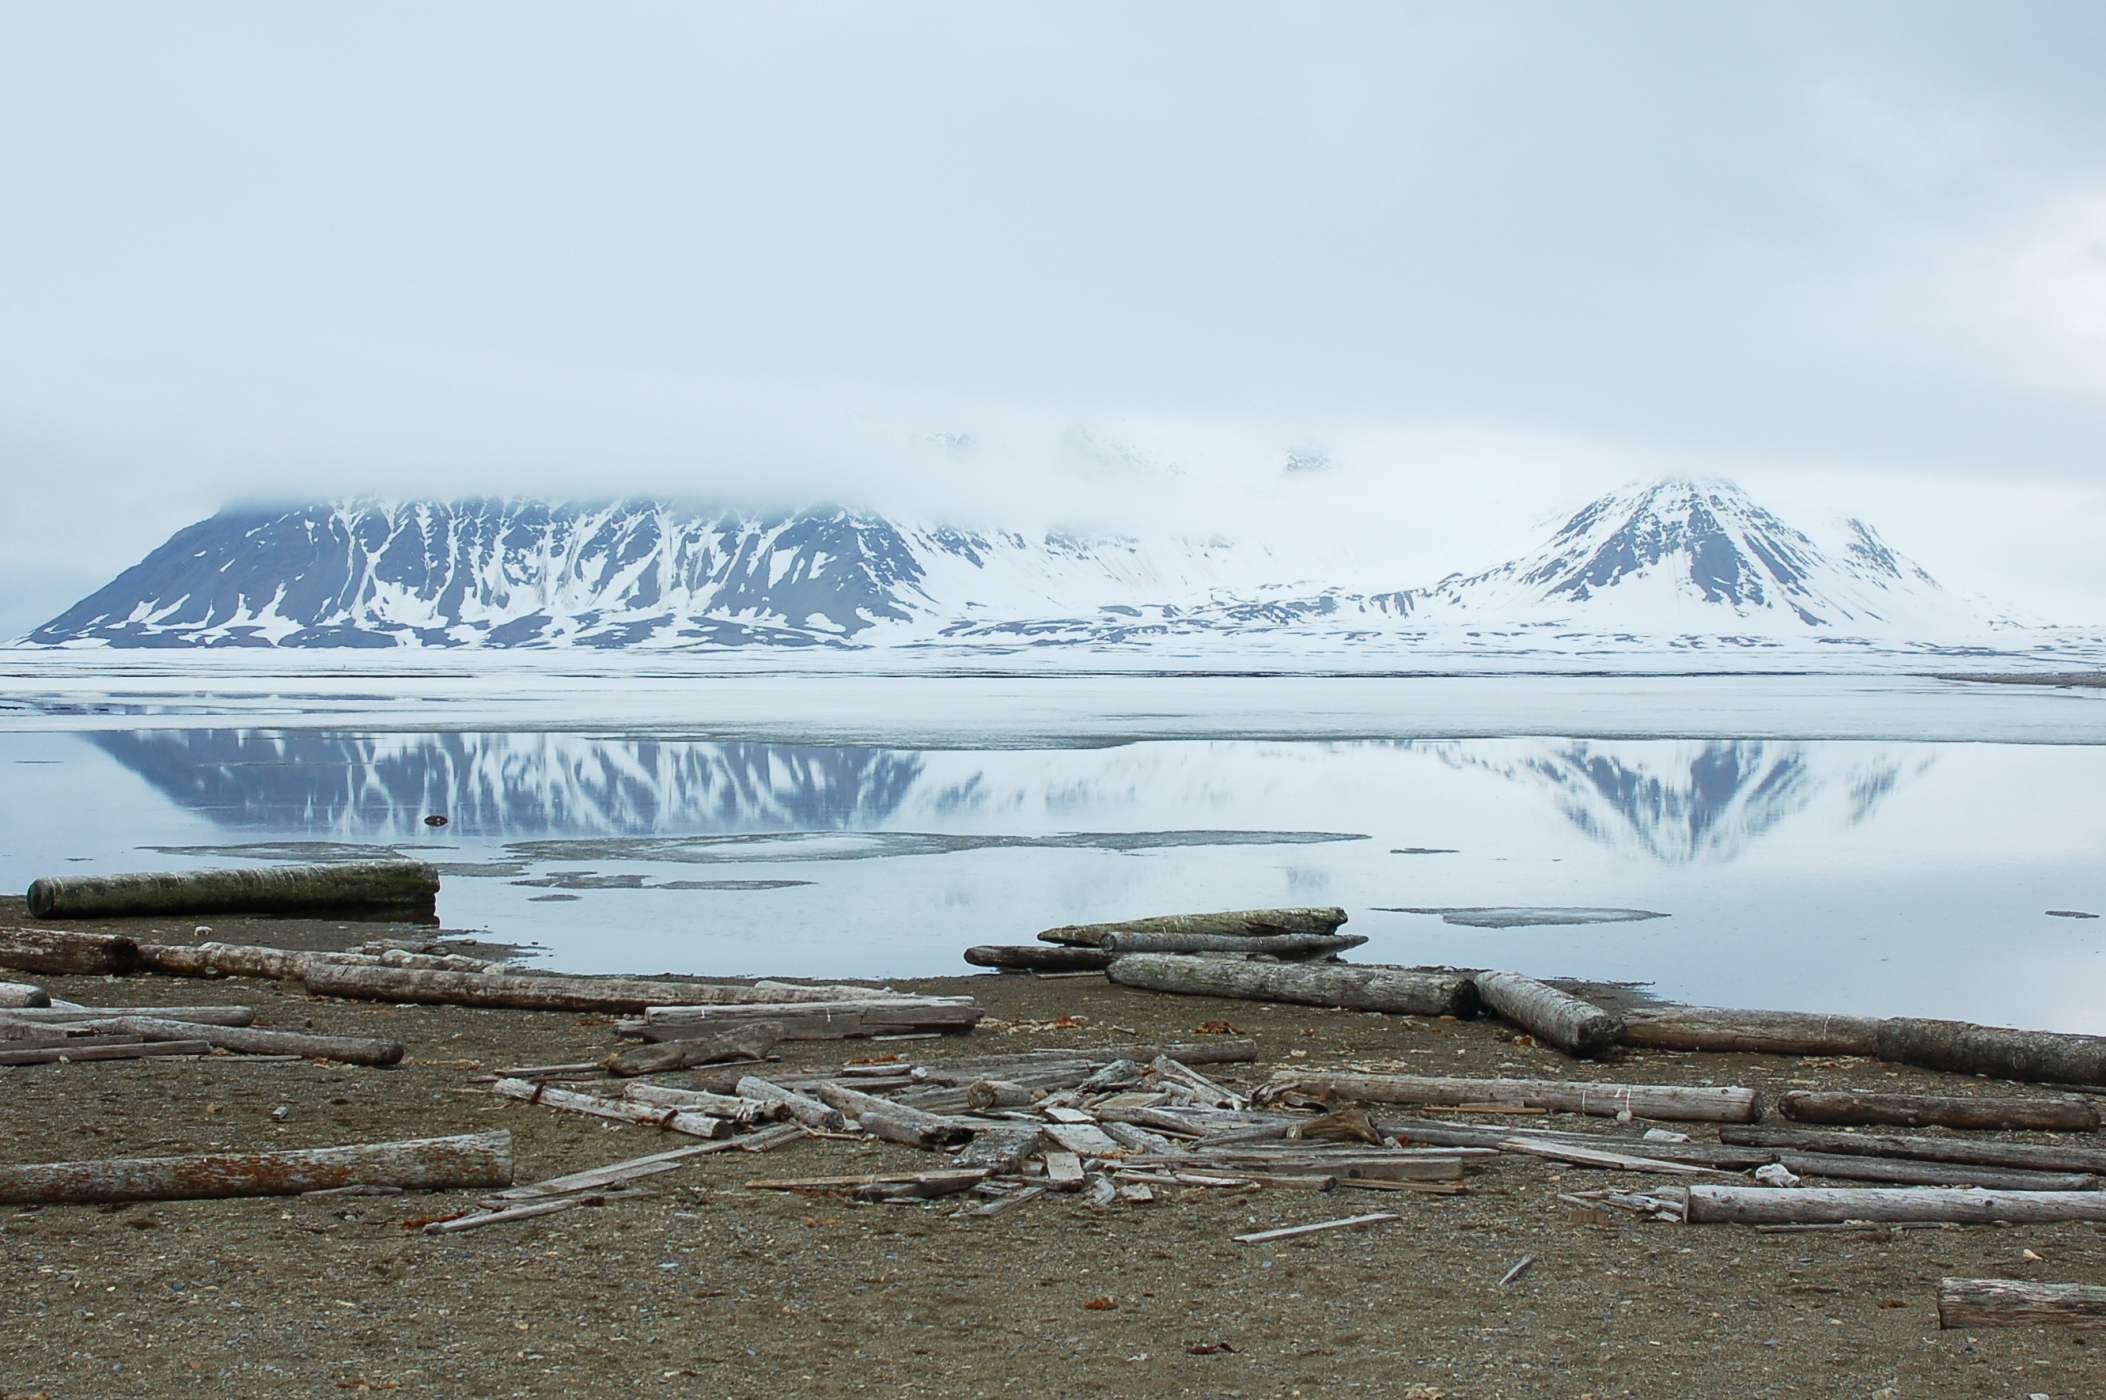 Poolepynten, Spitsbergen, June